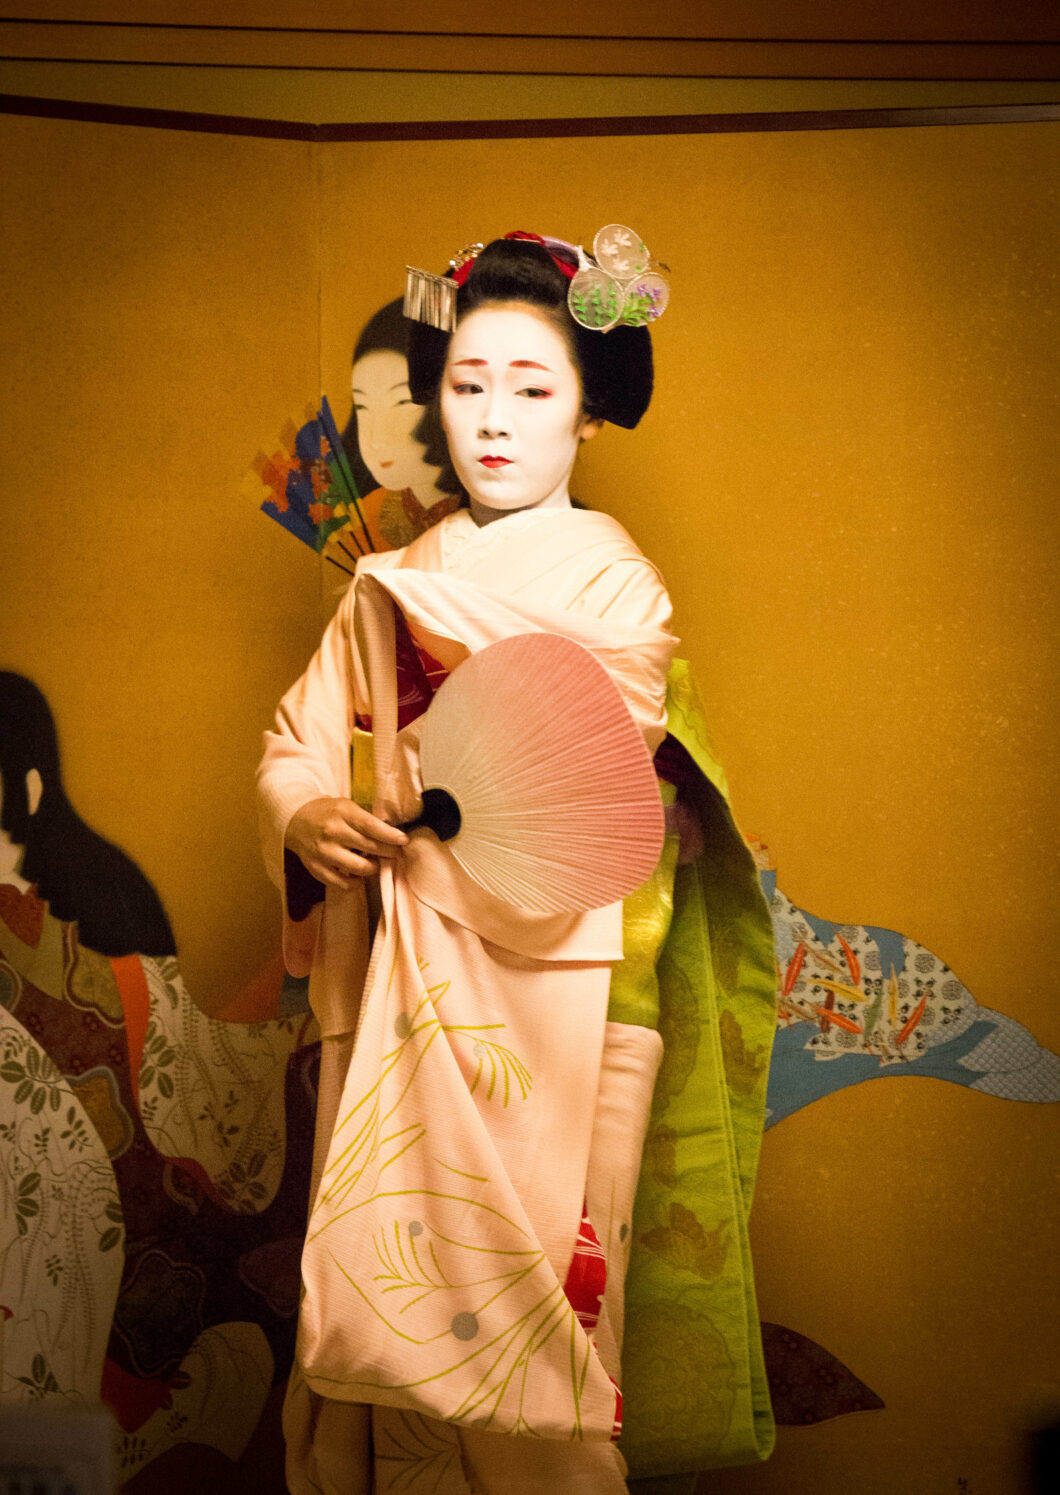 A Maiko performing in Kyoto